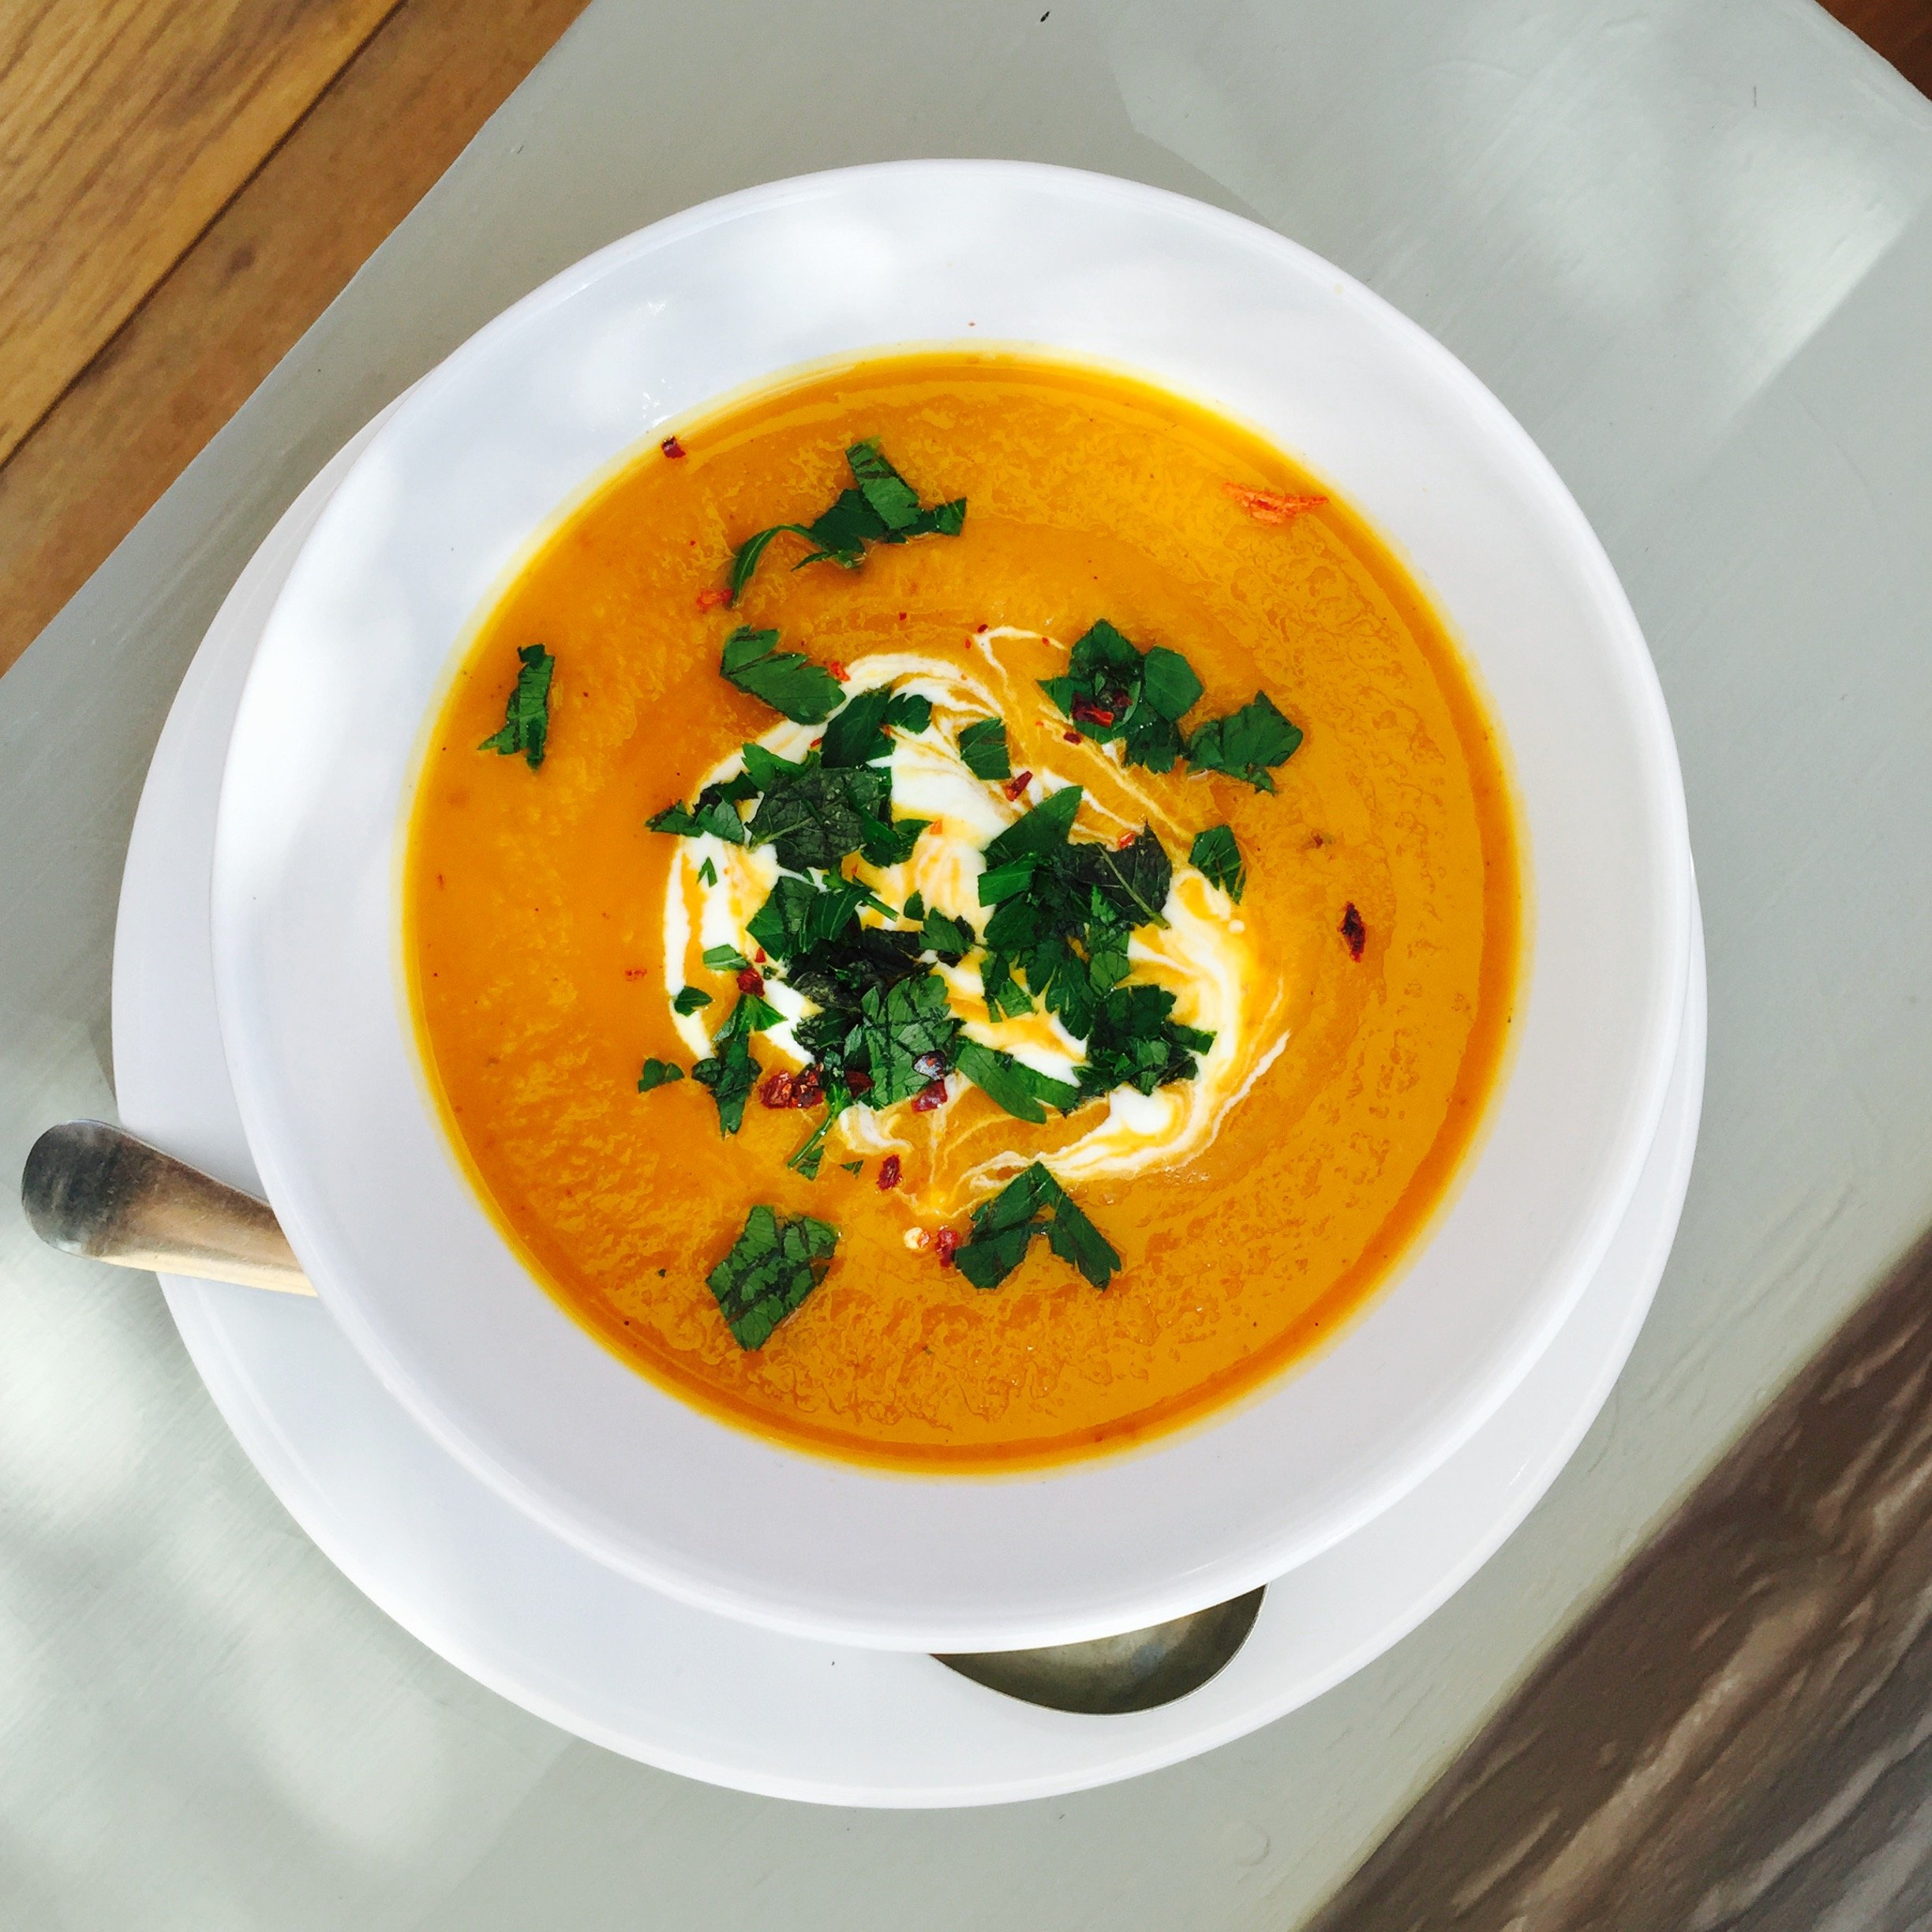 bowlful of moroccan roast vegetable soup with soured cream and herbs